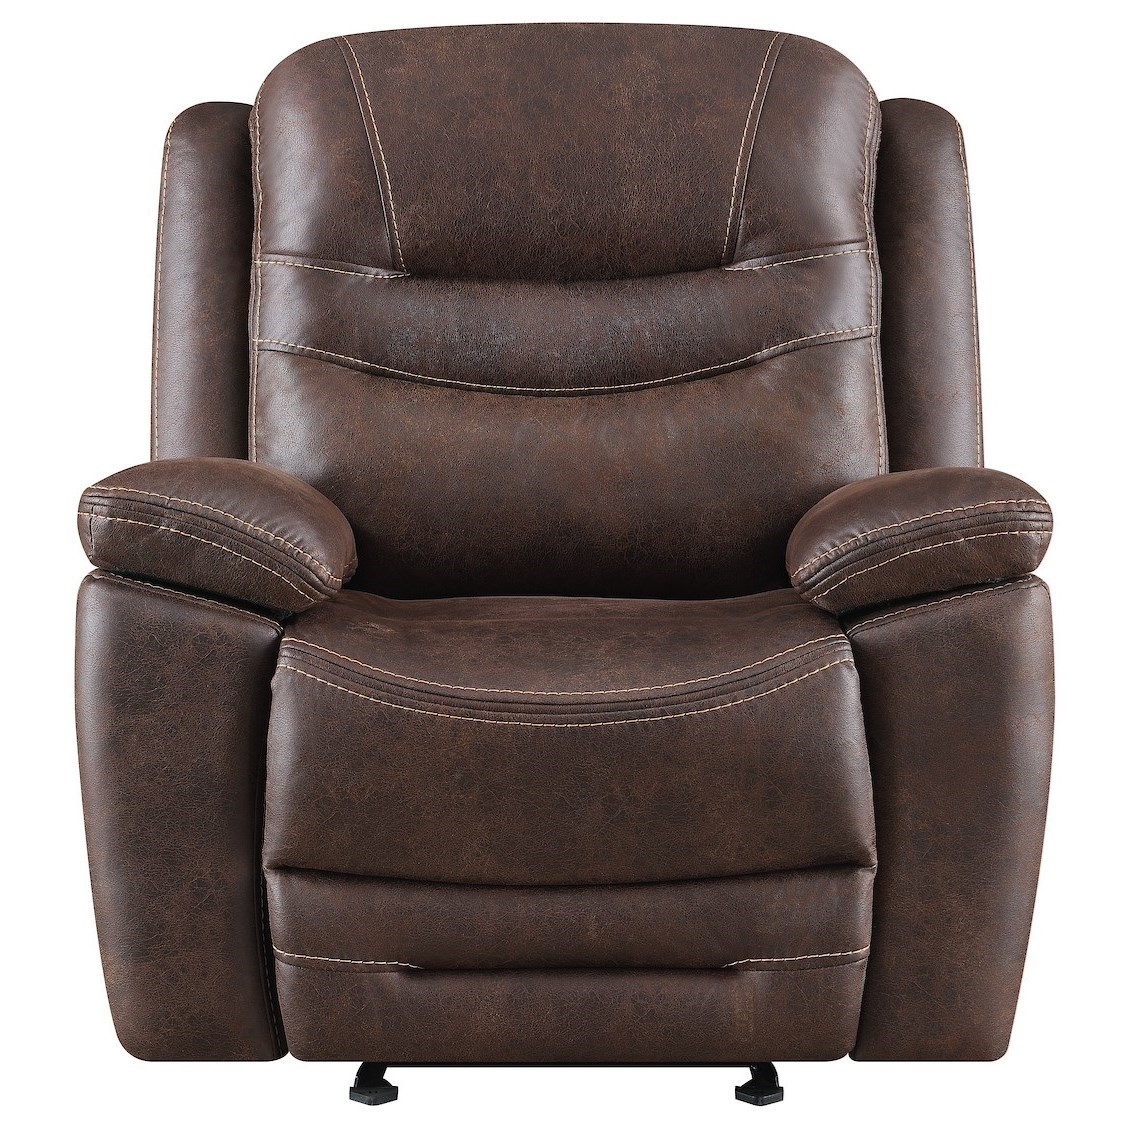 Turismo Power Reclining Chair at Walker's Furniture